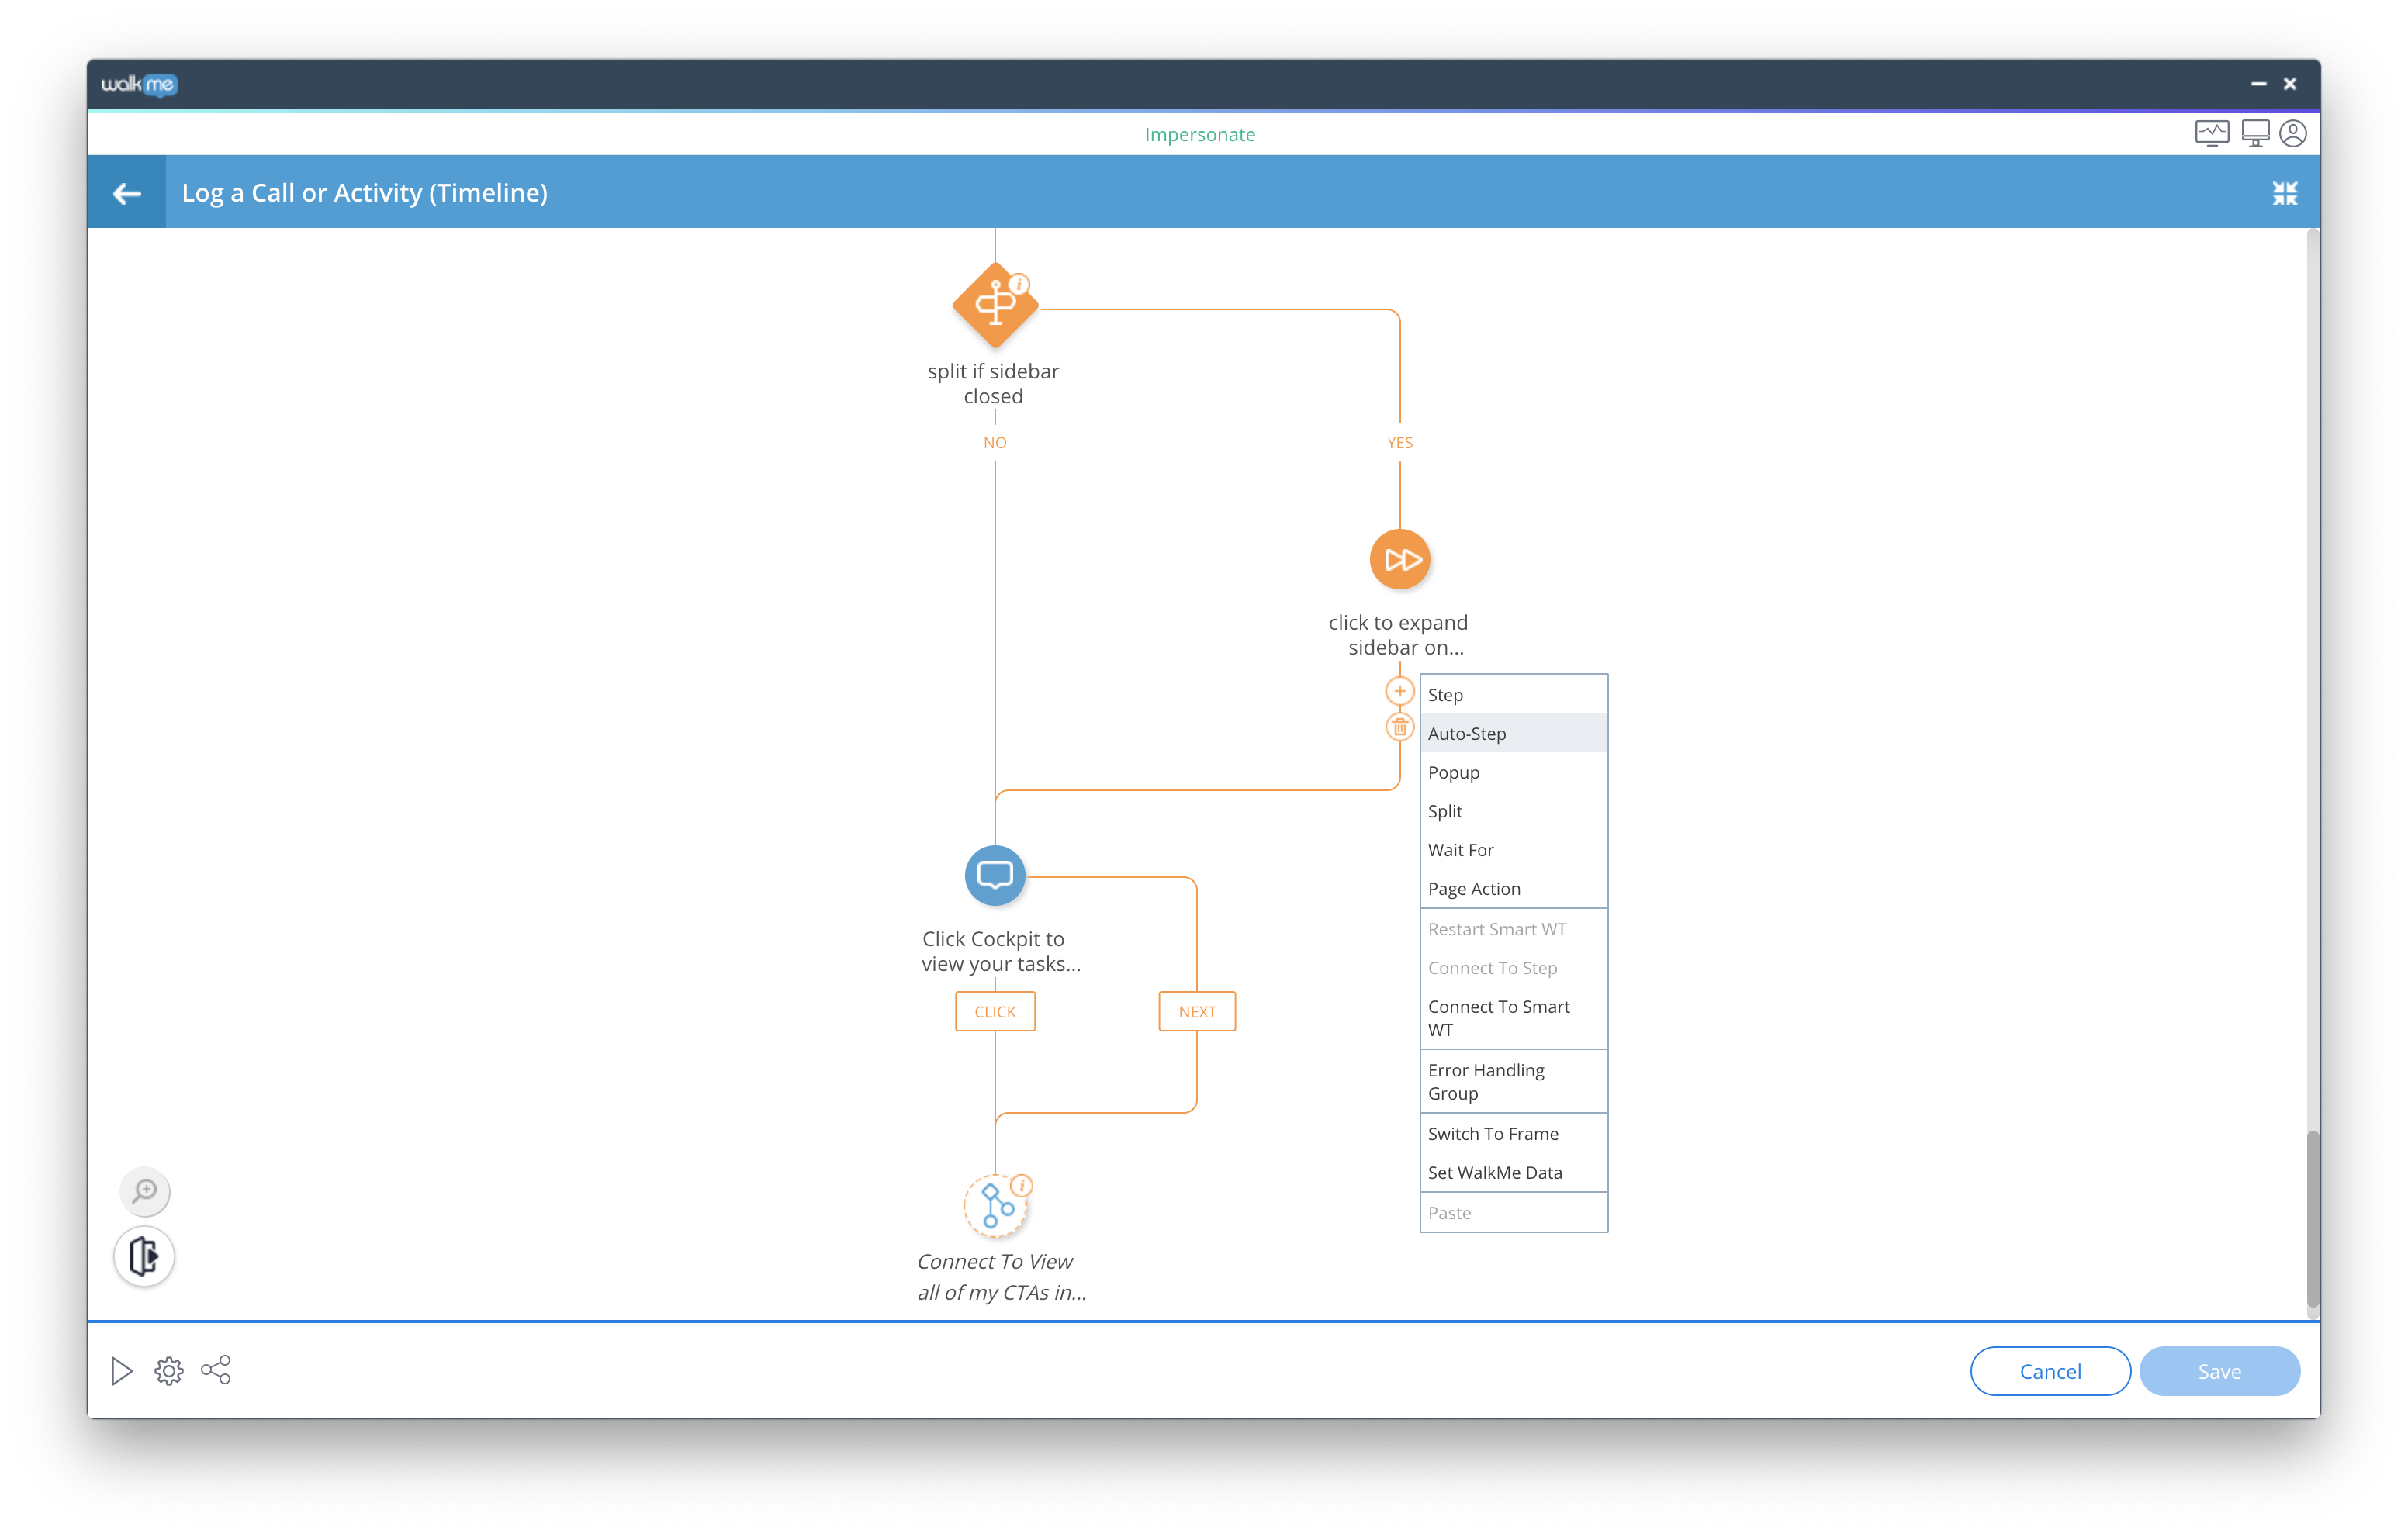 WalkMe's code-free editor allows users to build in-app guidance, contextual tips, popup notifications, surveys and even to easily automate tasks with a custom chatbot.